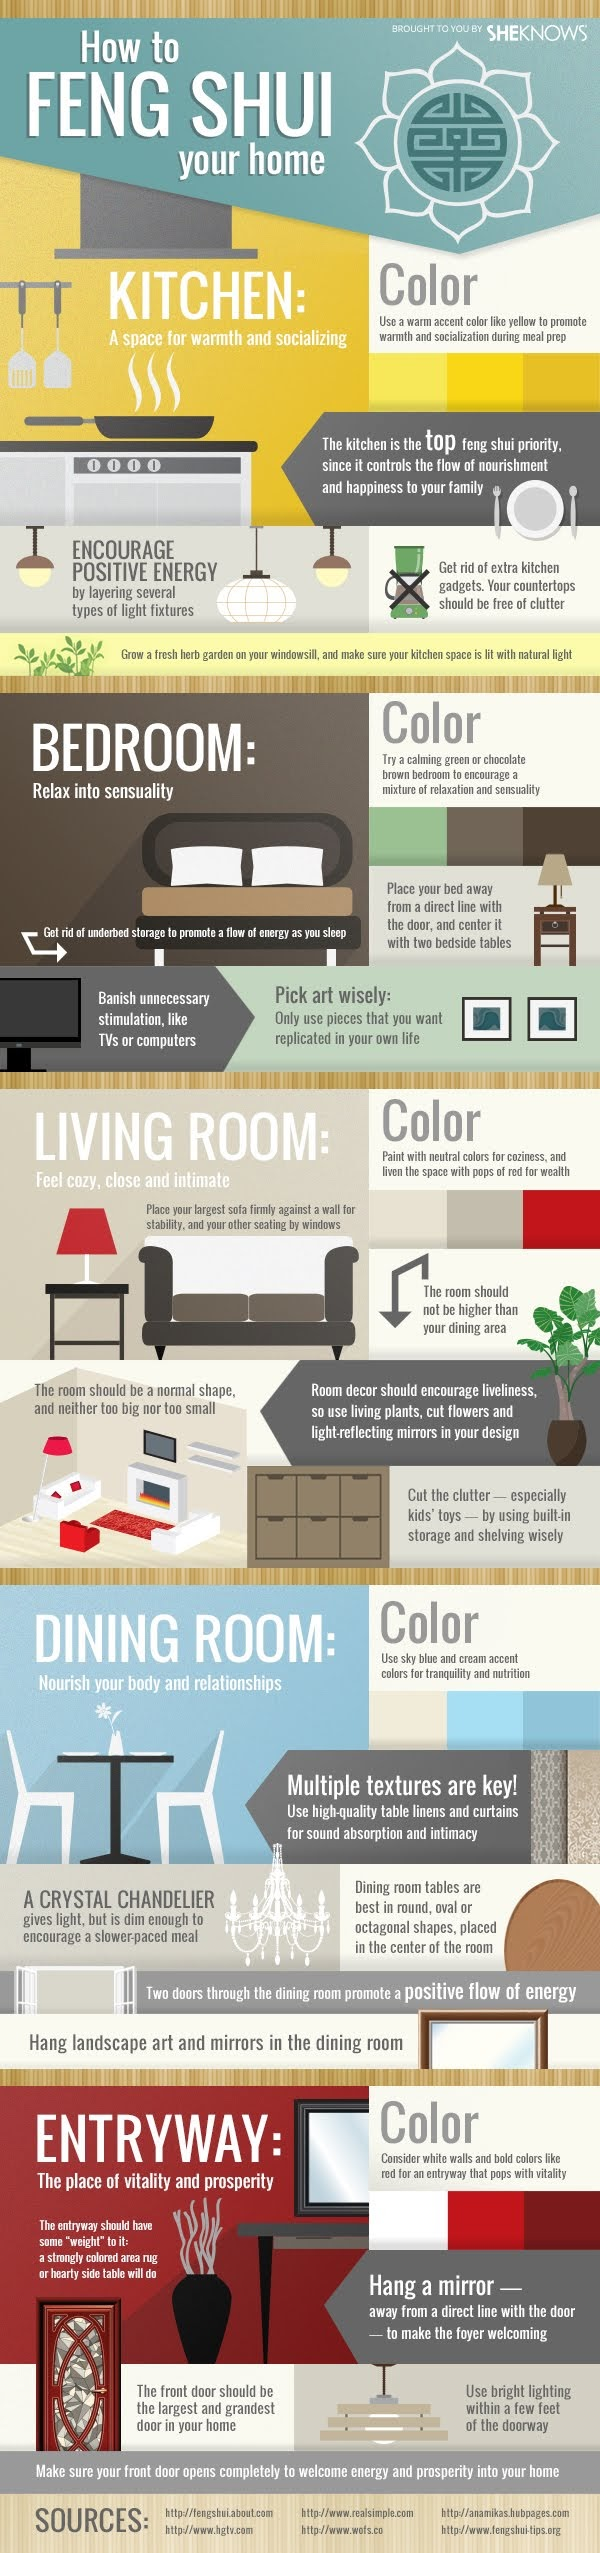 How to Feng Shui Your Home #infographic